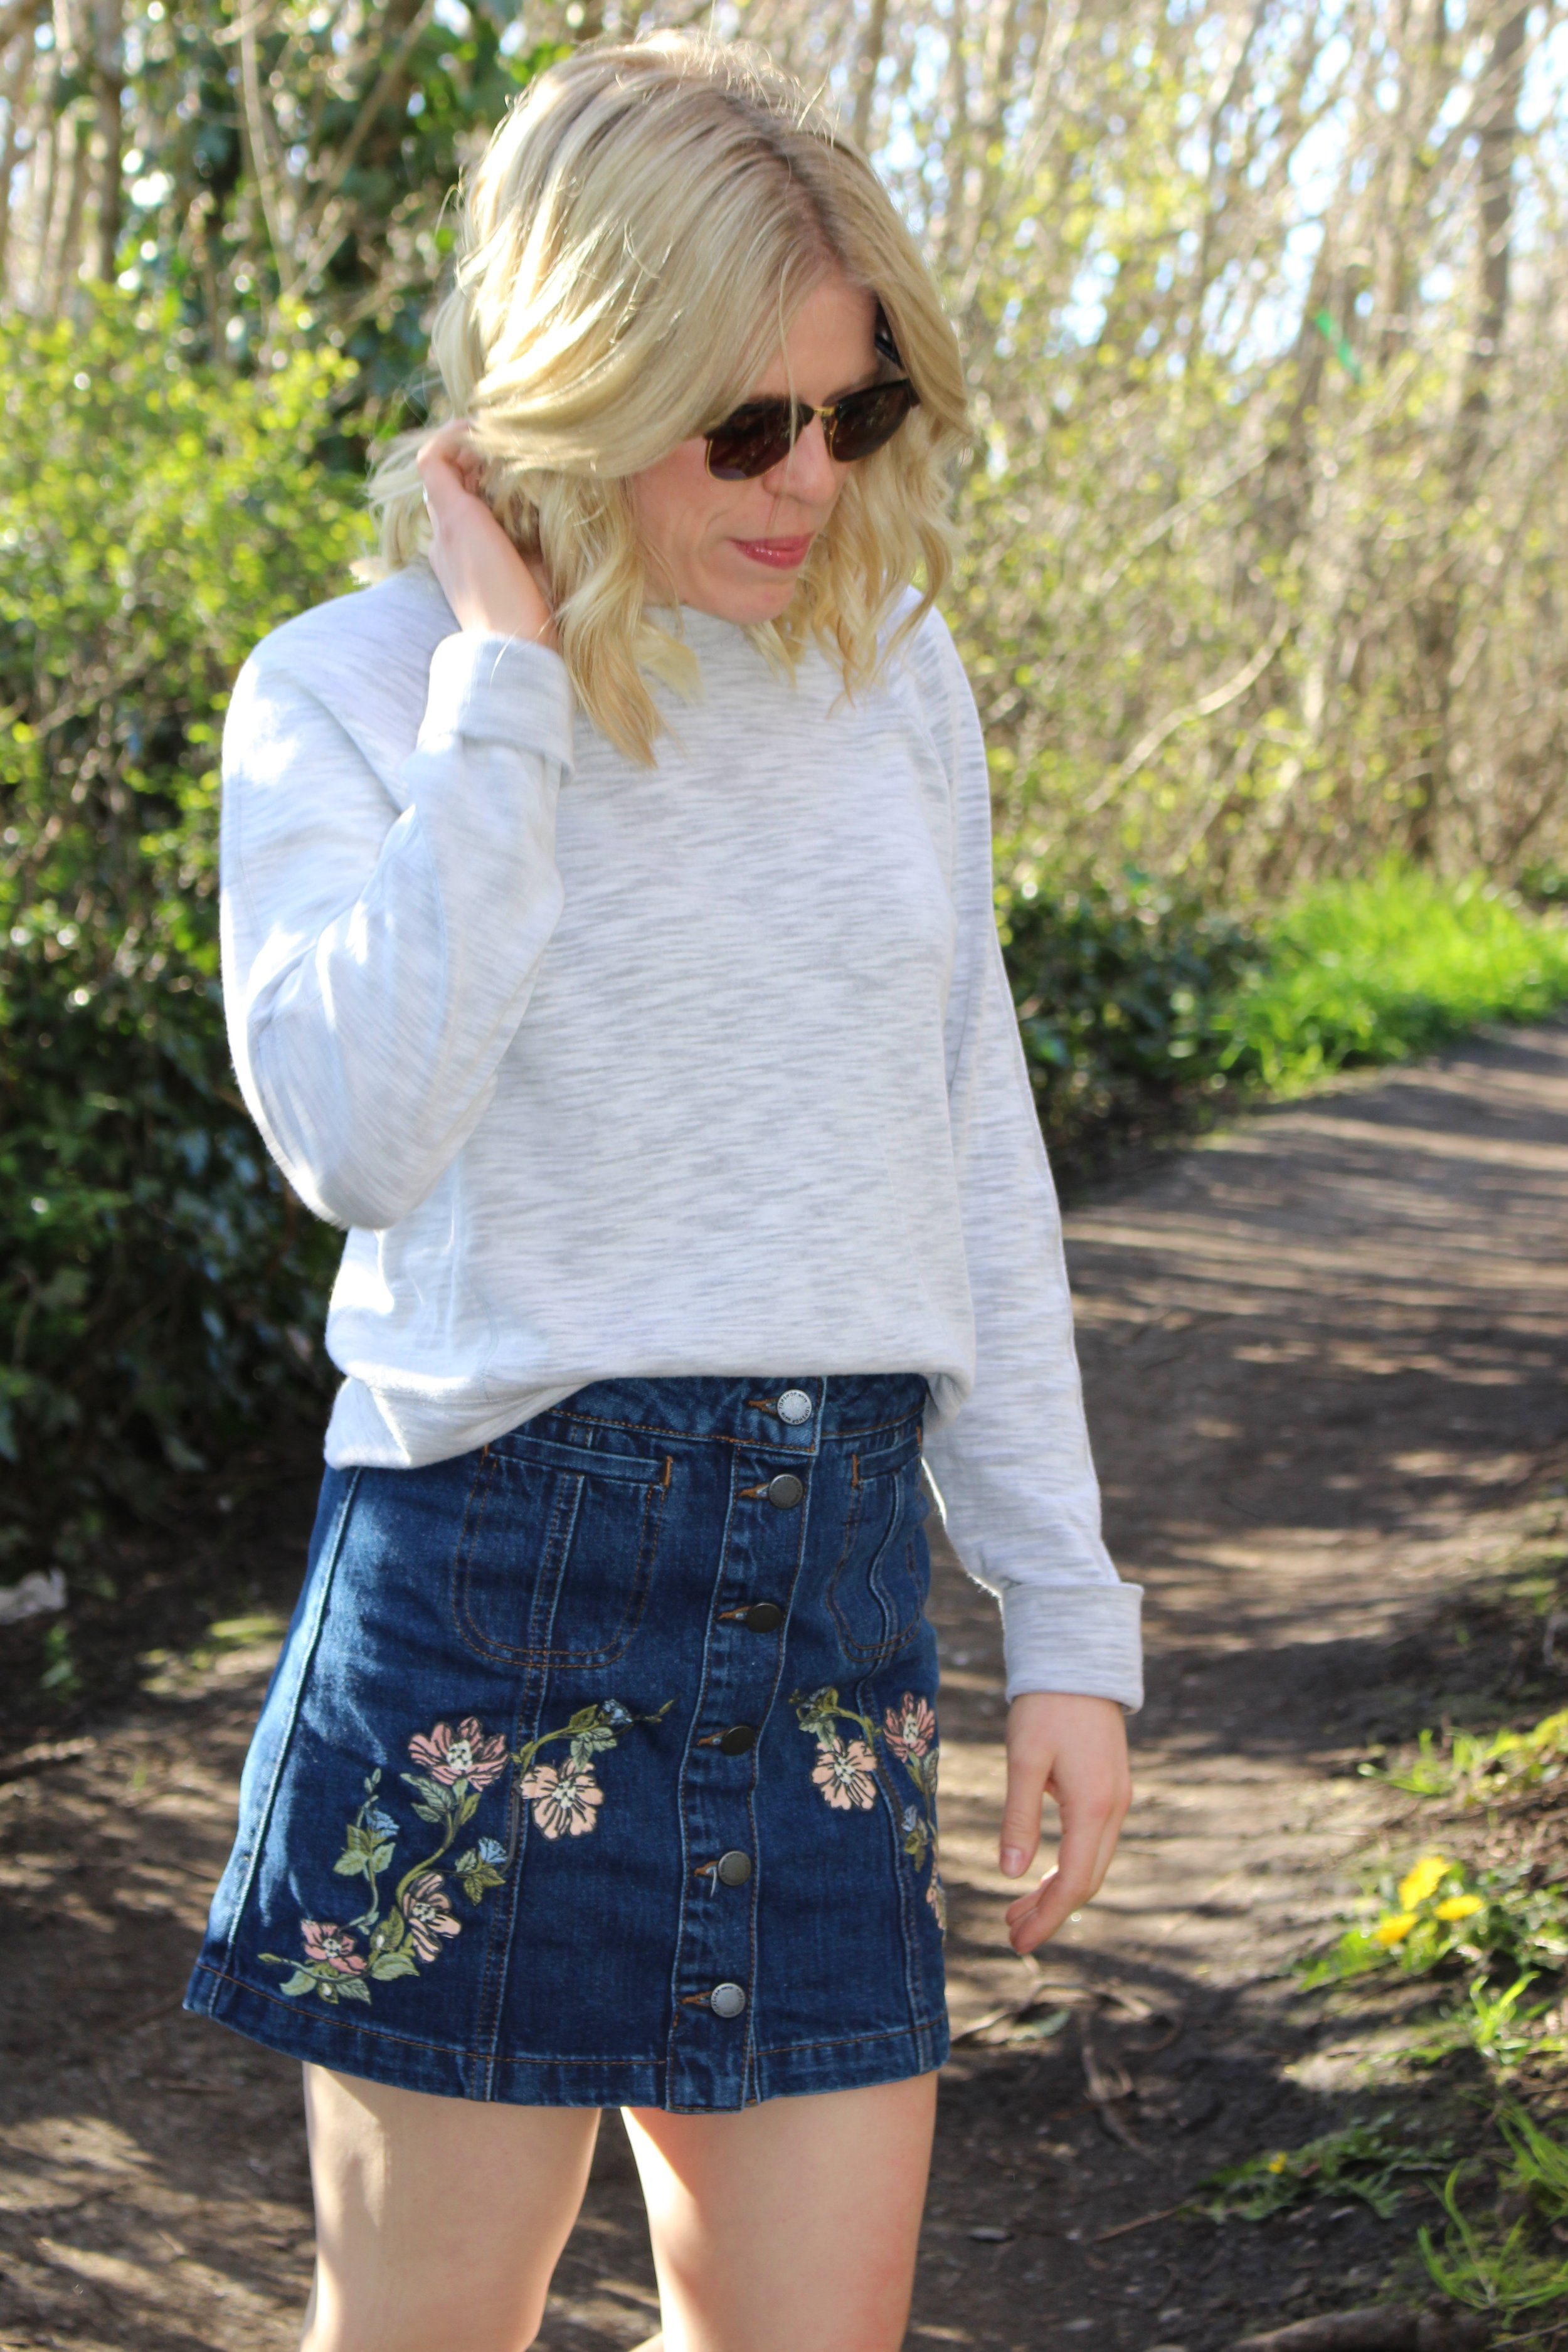 Topshop  Denim Mini,  Lululemon  Sweatshirt,  Ray-Ban  Sunglasses,  Converse  Sneakers